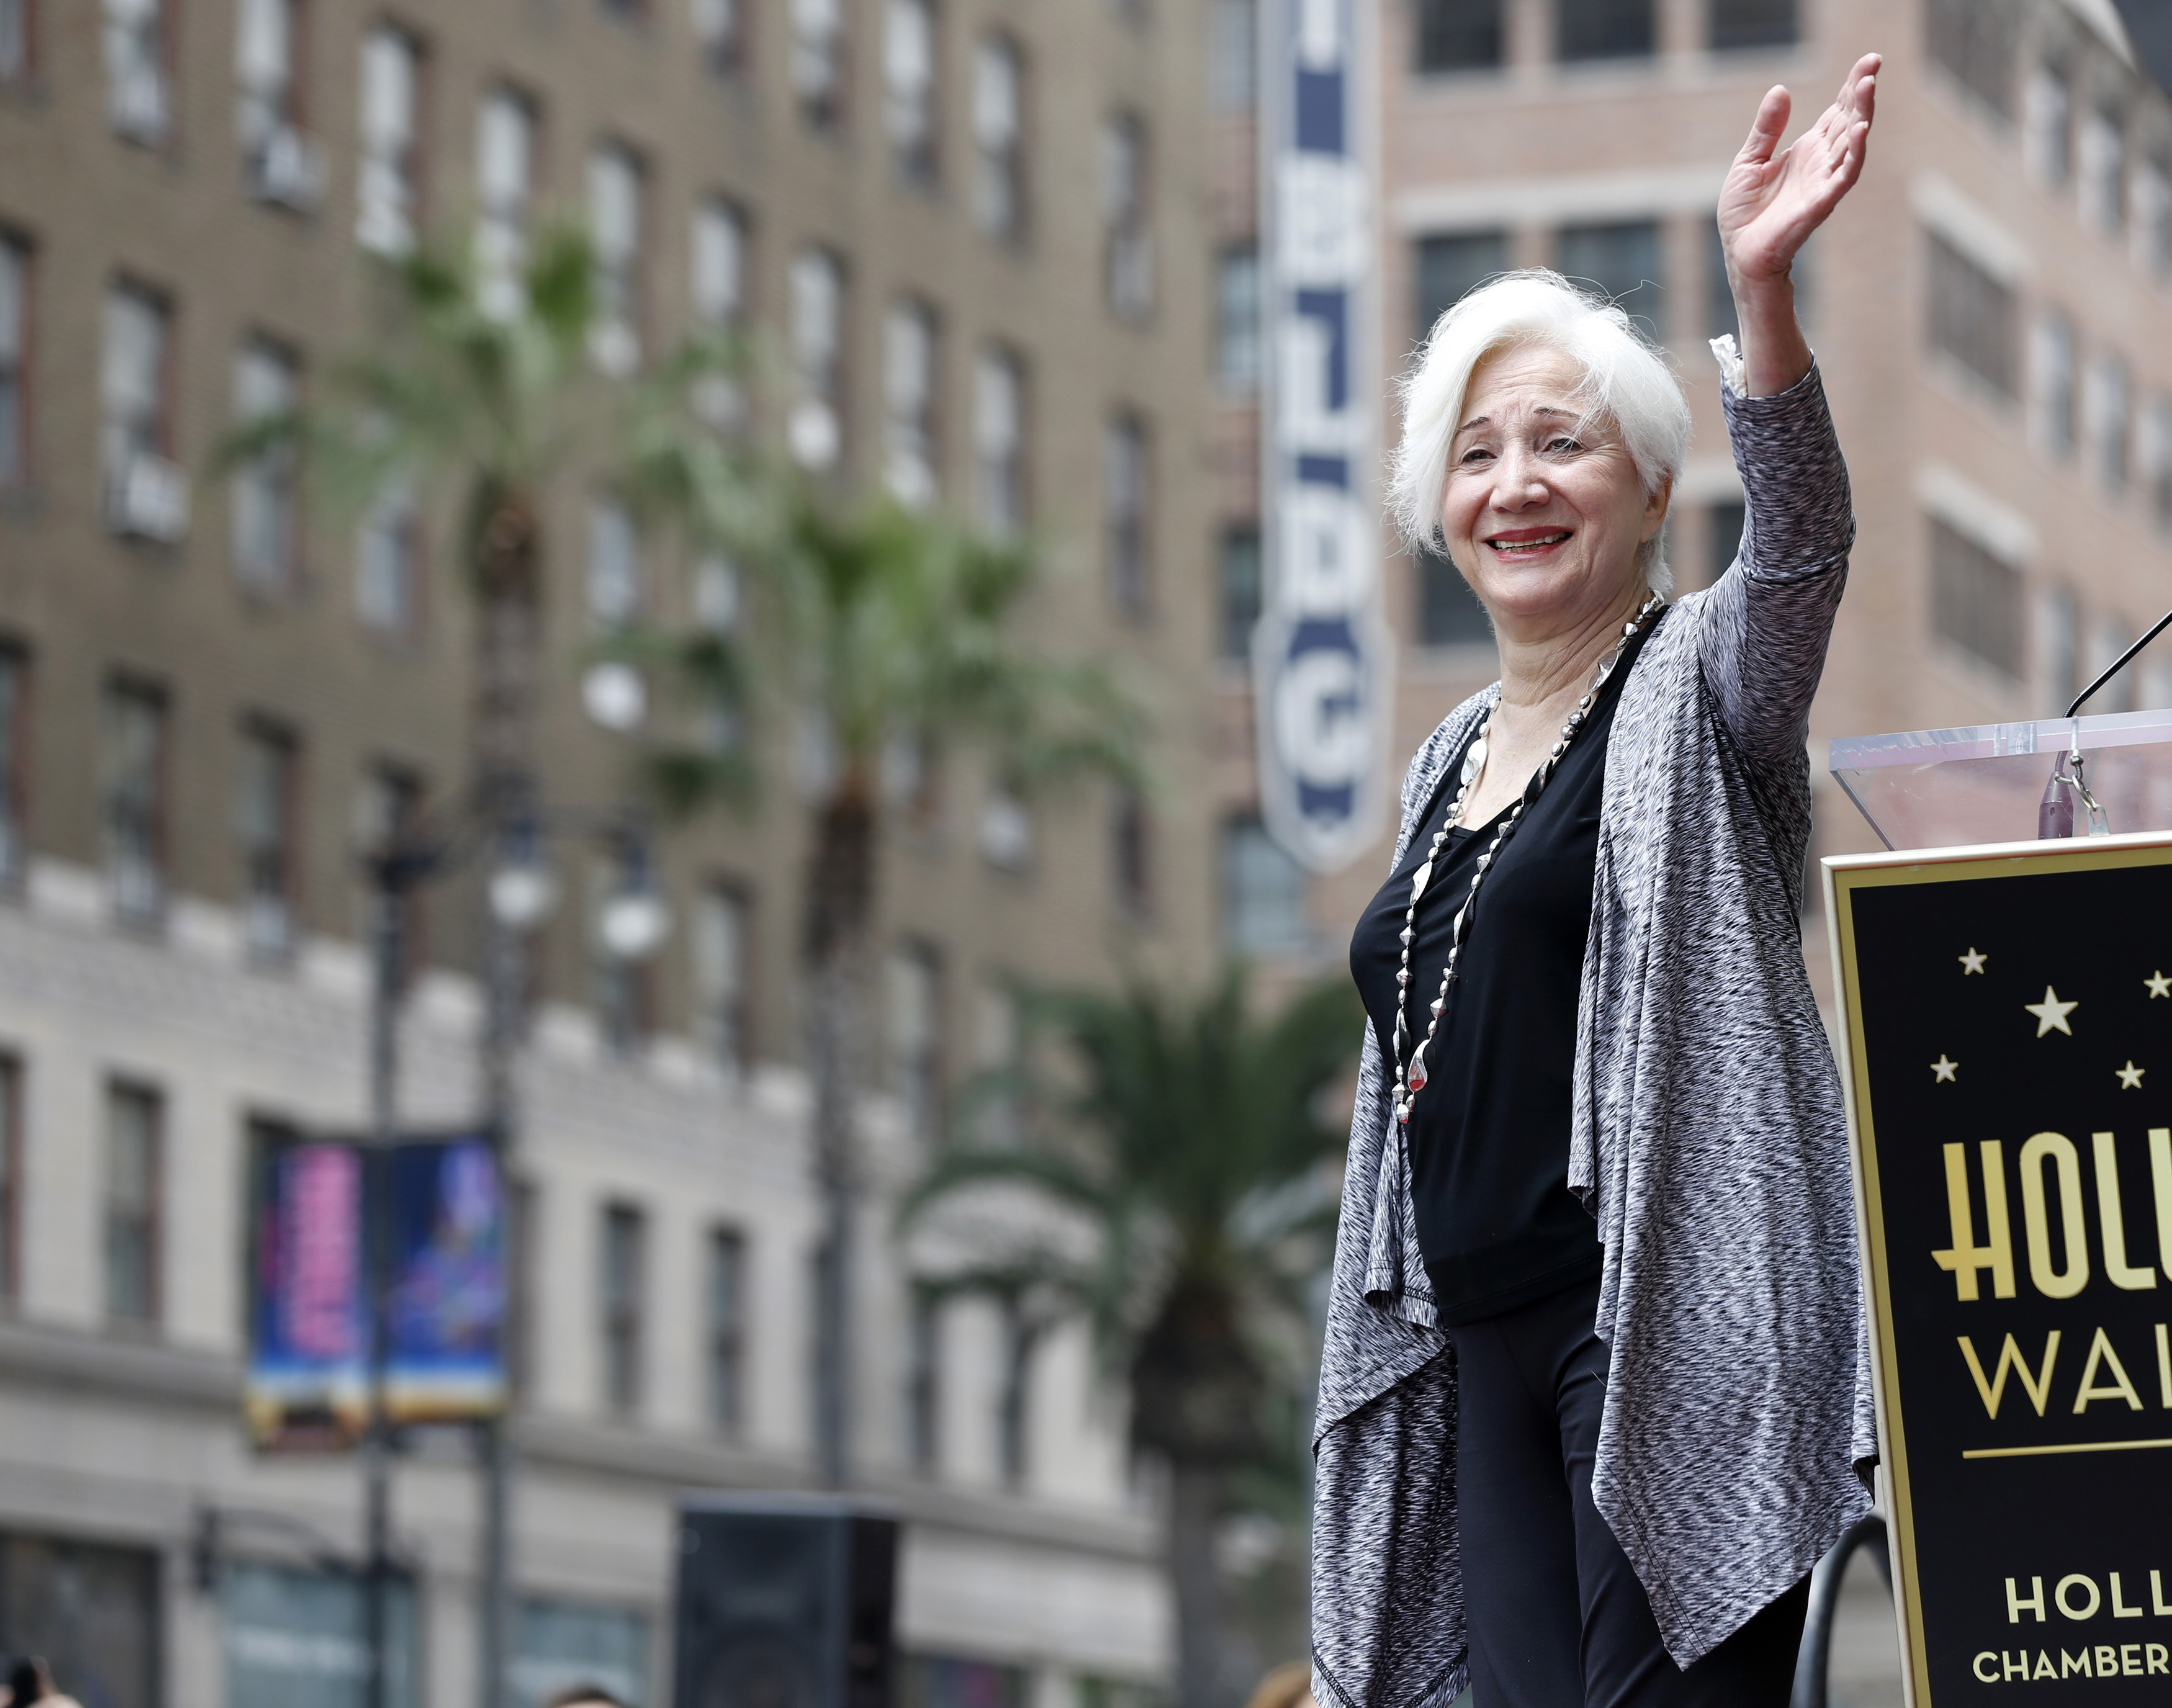 Actress Olympia Dukakis waves at the ceremony for the unveiling of her star on the Walk of Fame in Los Angeles, California May 24, 2013.  REUTERS/Mario Anzuoni